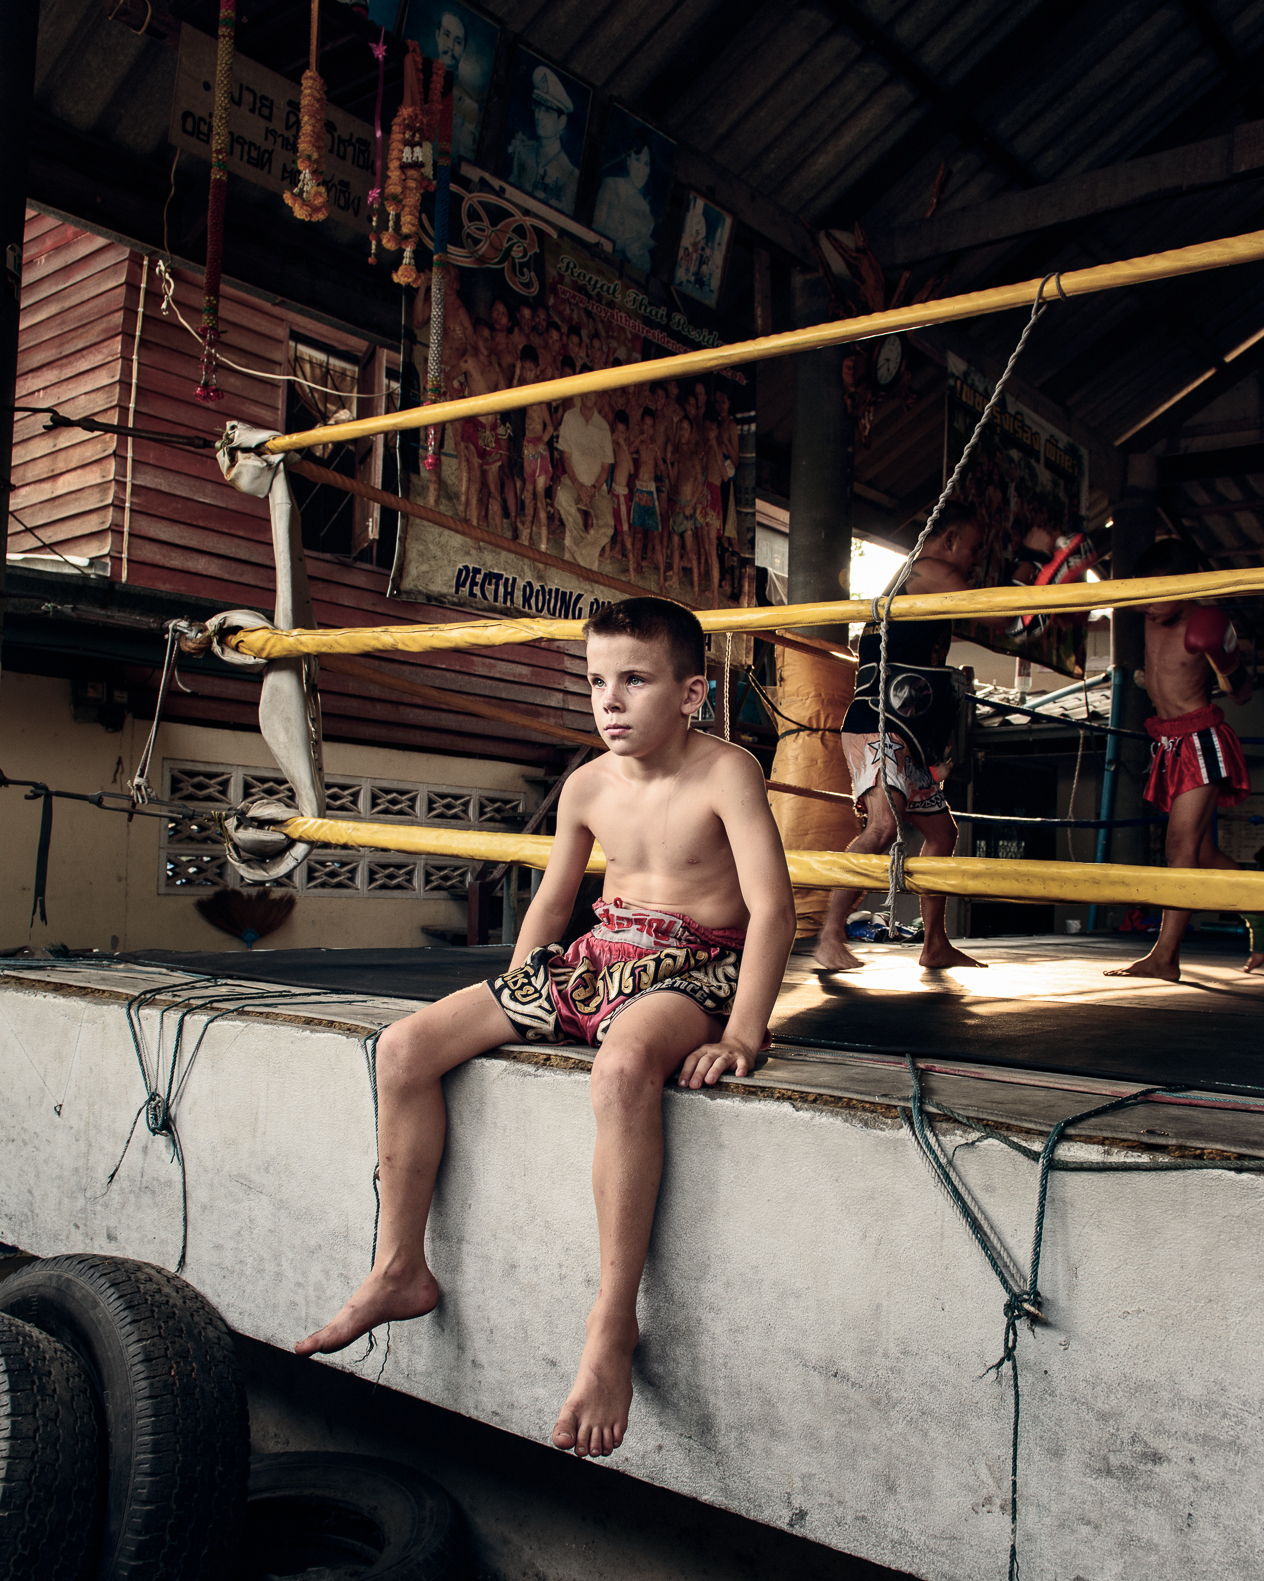 Robert-Paul-Cohen-Photography-little-tigers-muay-thai-8